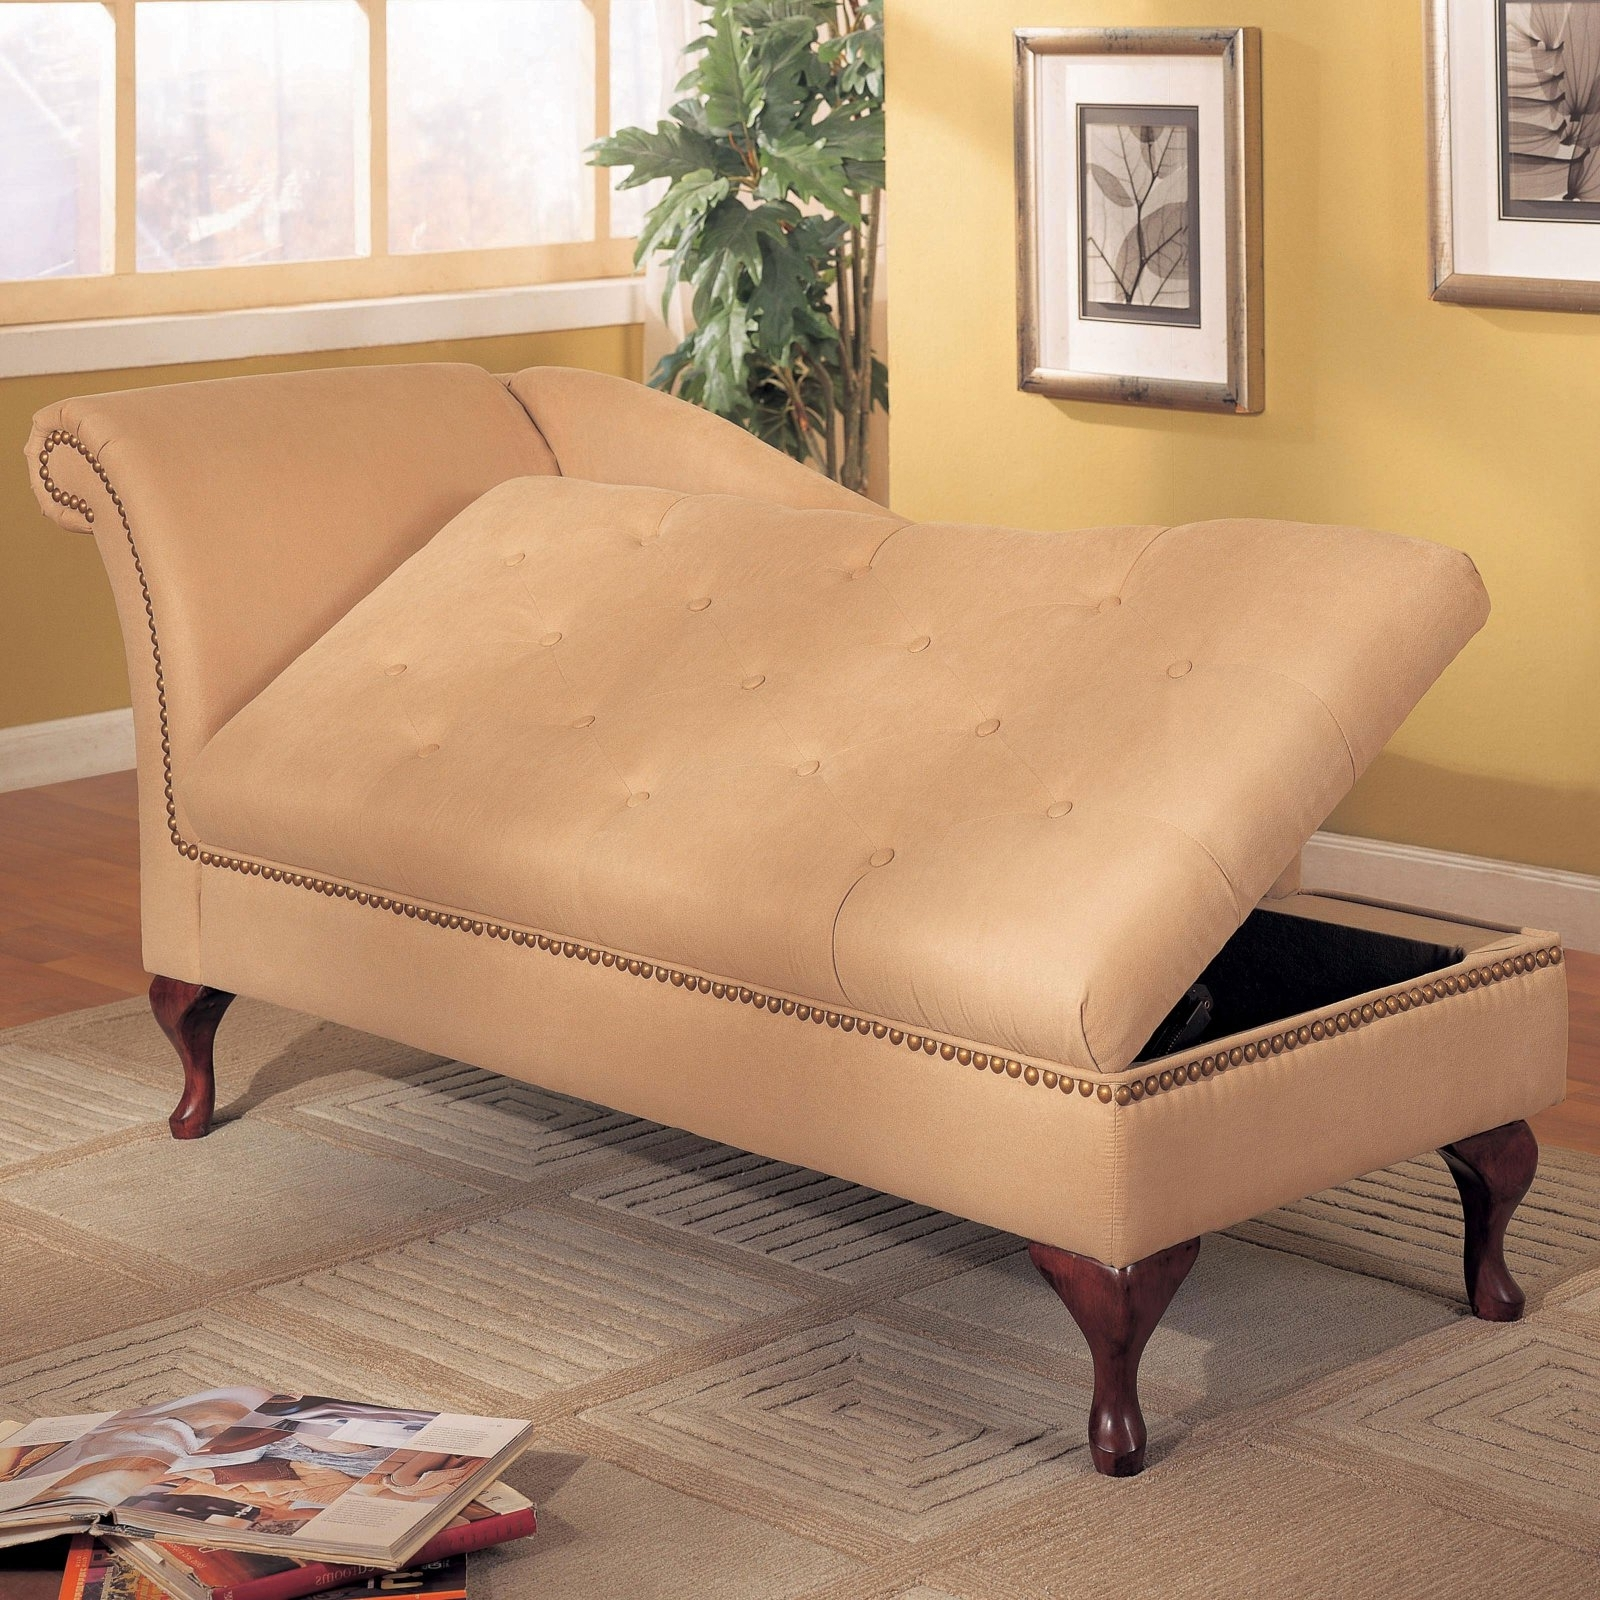 Most Current Yellow Chaise Lounge Chairs Inside Yellow Chaise Lounge Chairs • Lounge Chairs Ideas (View 6 of 15)